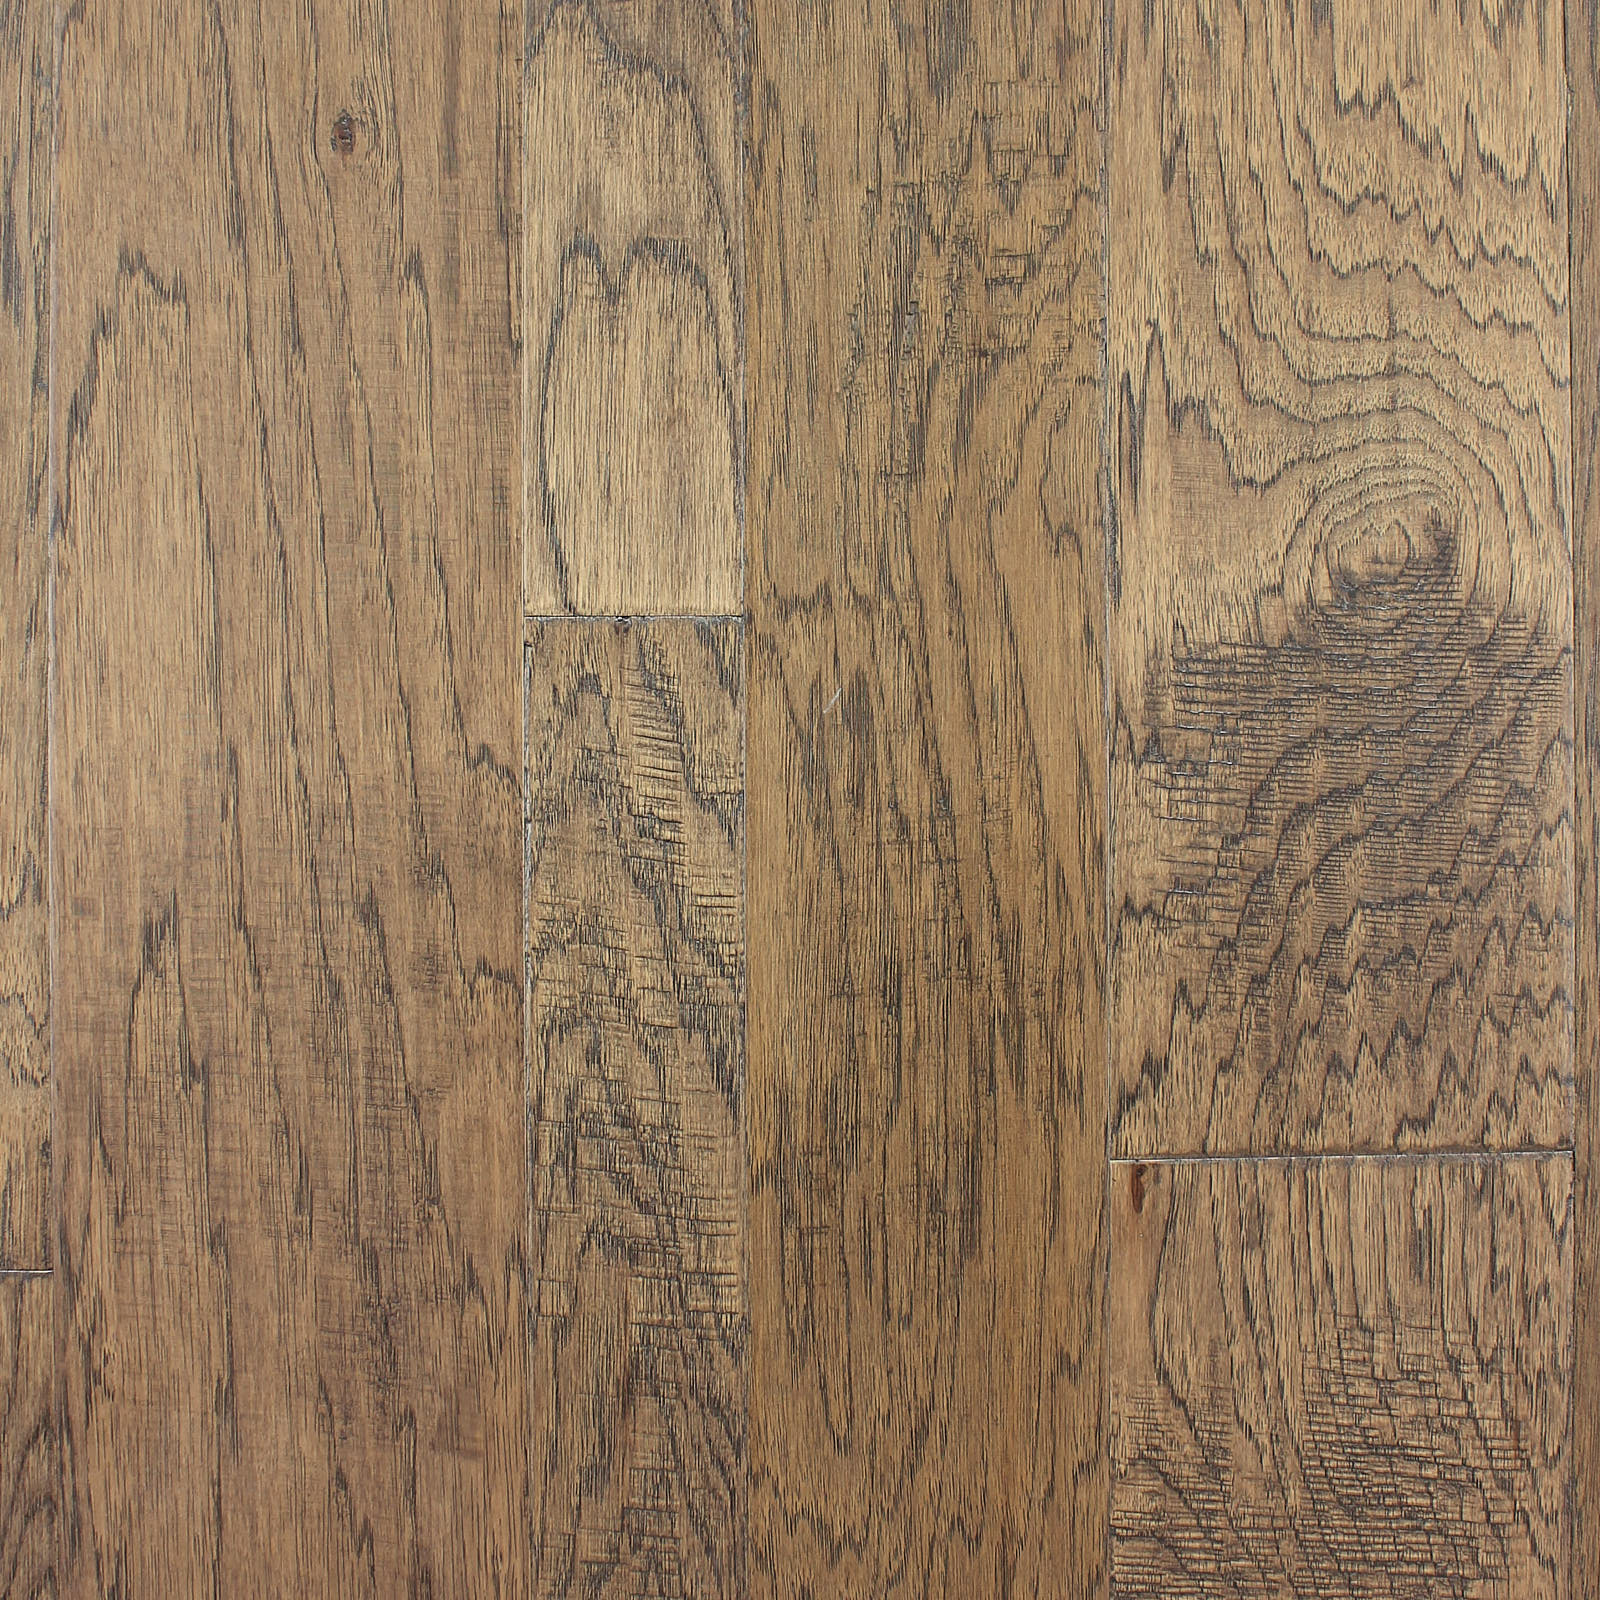 Firestorm Pendleton Engineered Hardwood Flooring